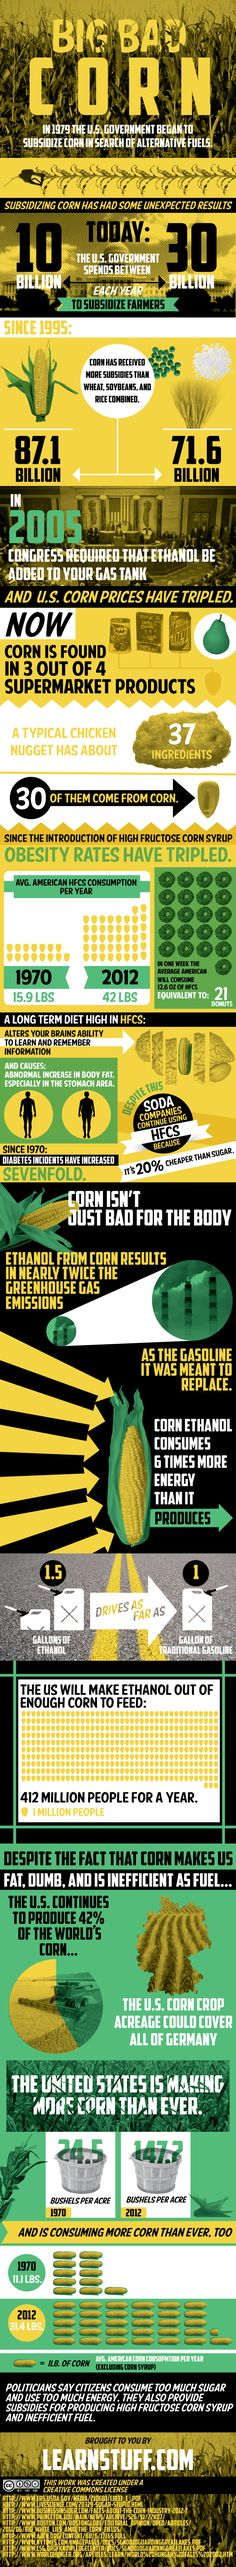 Is corn the big evil? Are we children of the corn? Scary infographic from @Robin Elton @FitFluential LLC